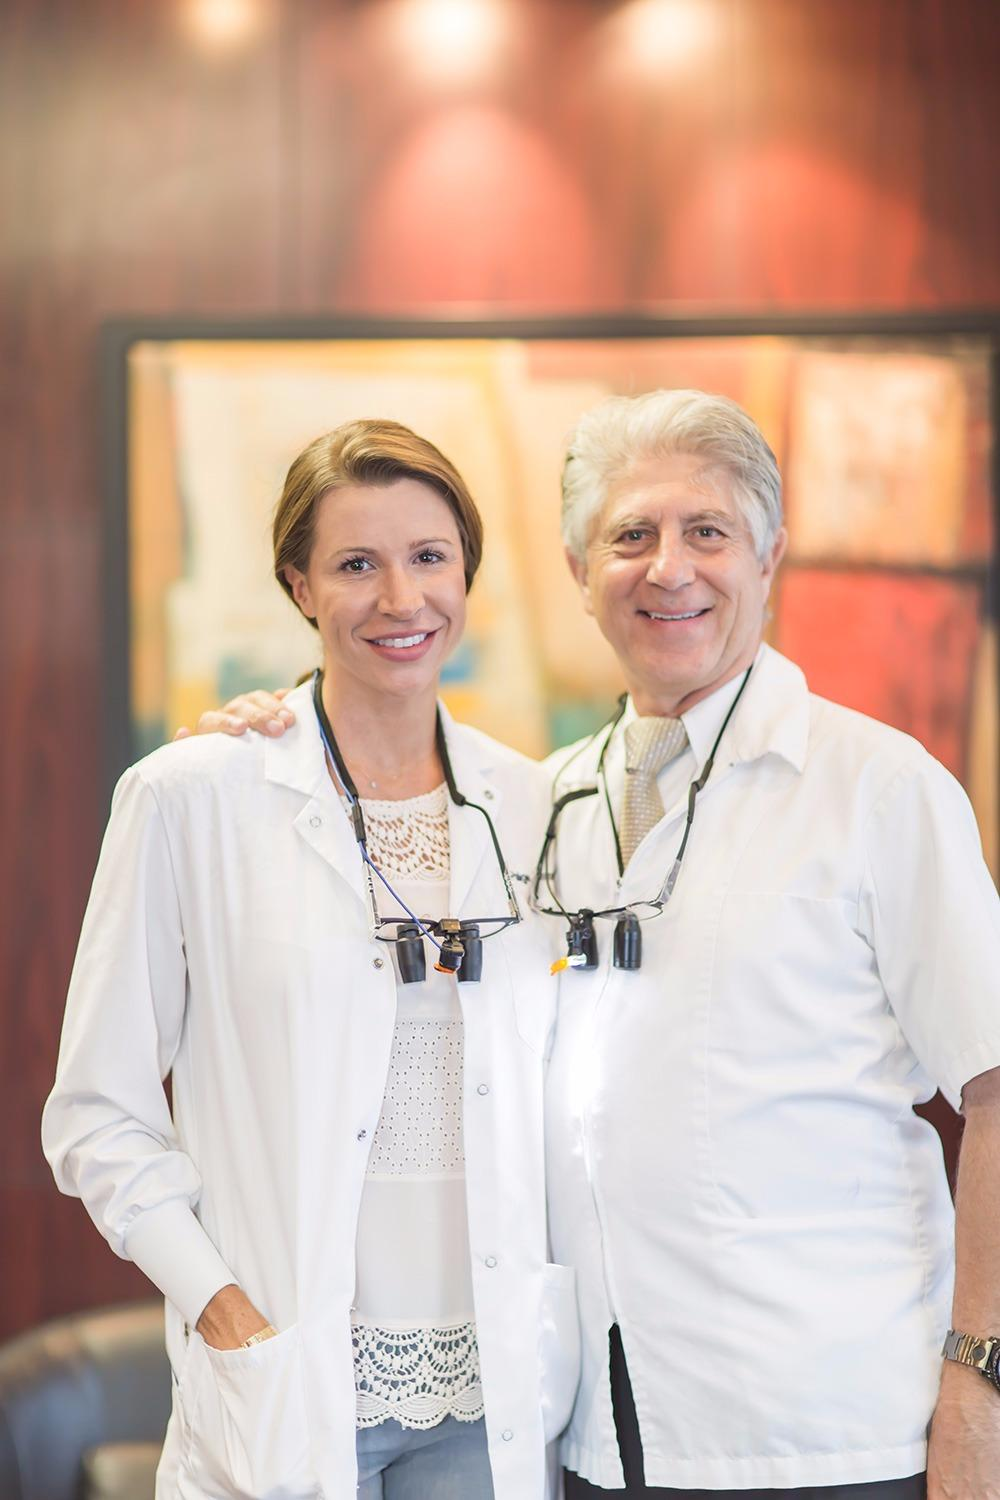 Holistic Dentists Dr. Woods & Dr. Vinograd